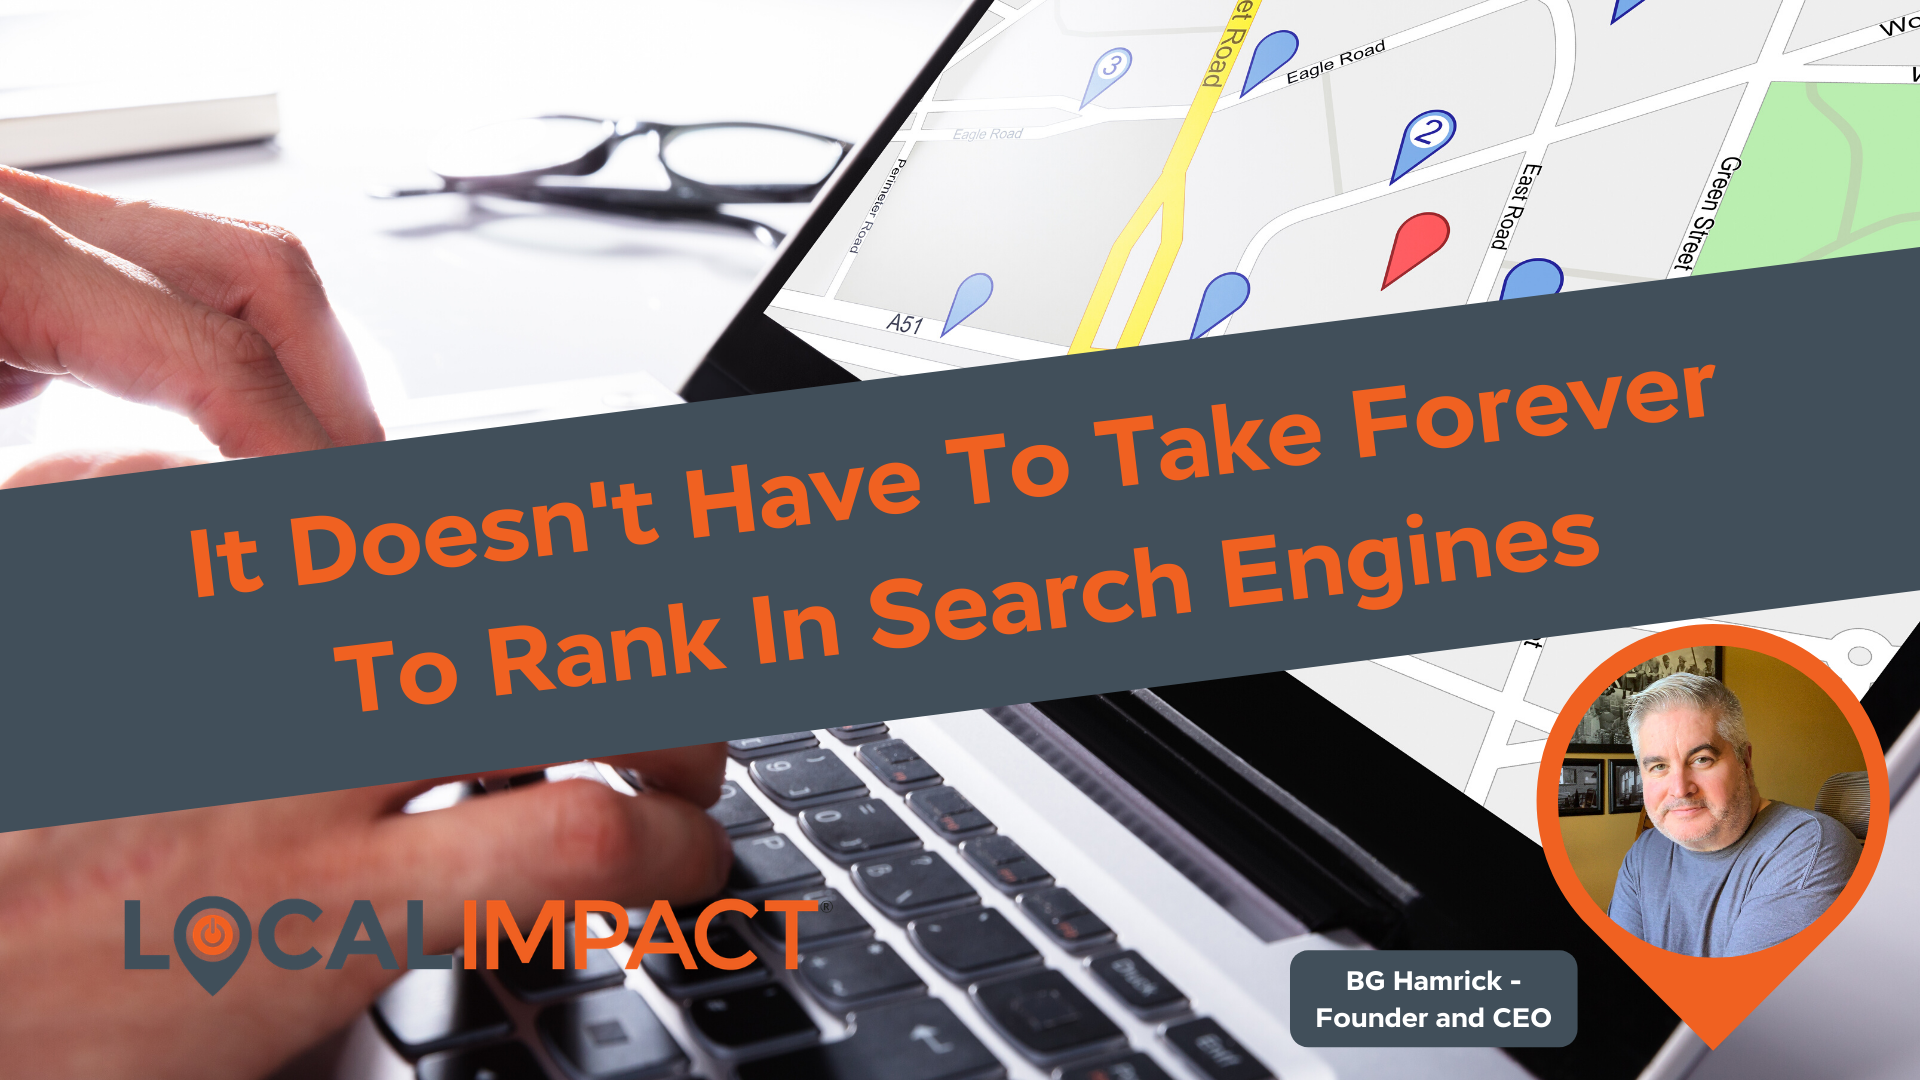 It Doesn't Have To Take Forever To Rank in Search Engines- Local Impact